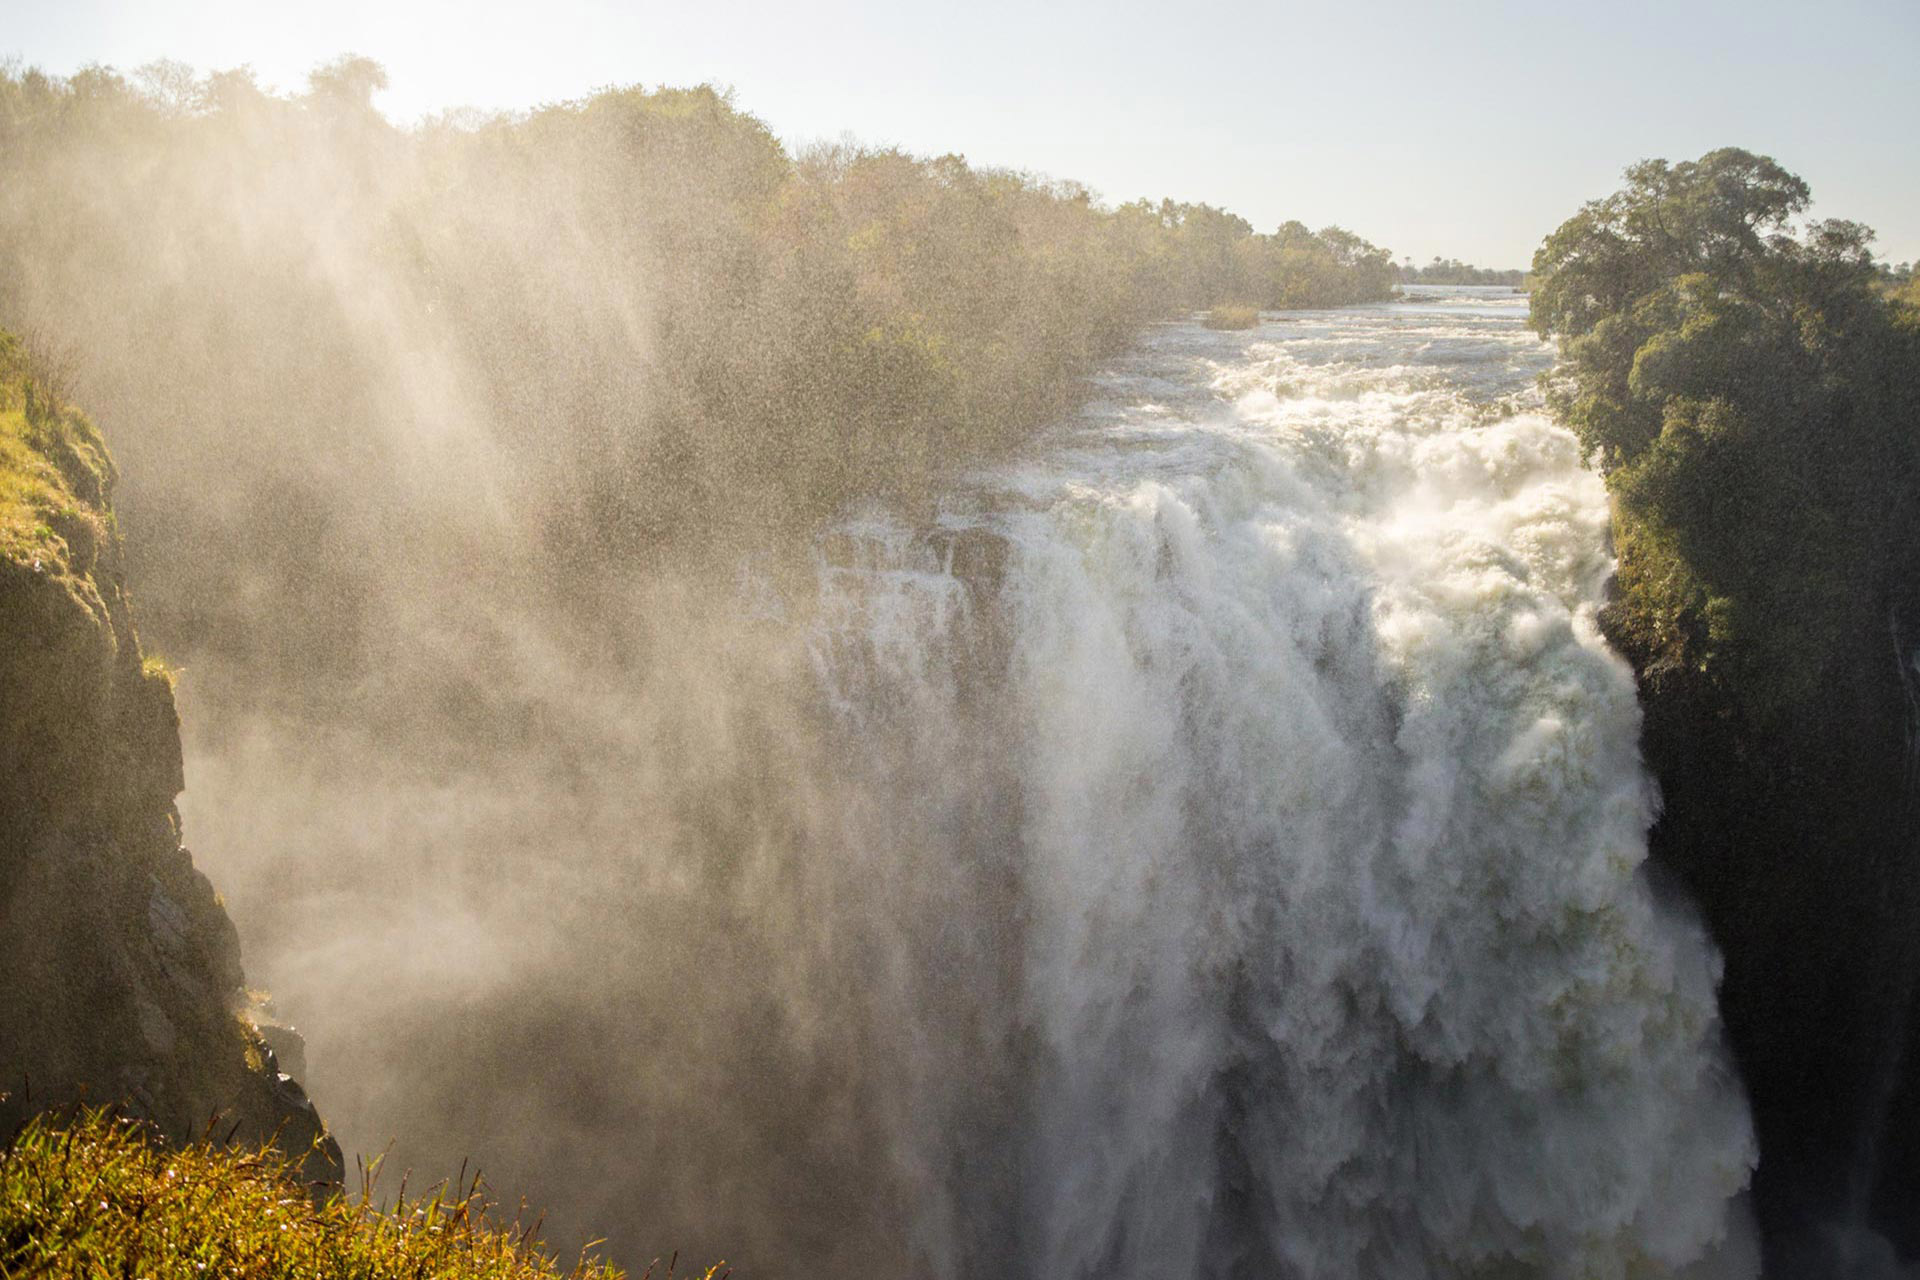 Zimbabwe-Of ancient ruins and wild places